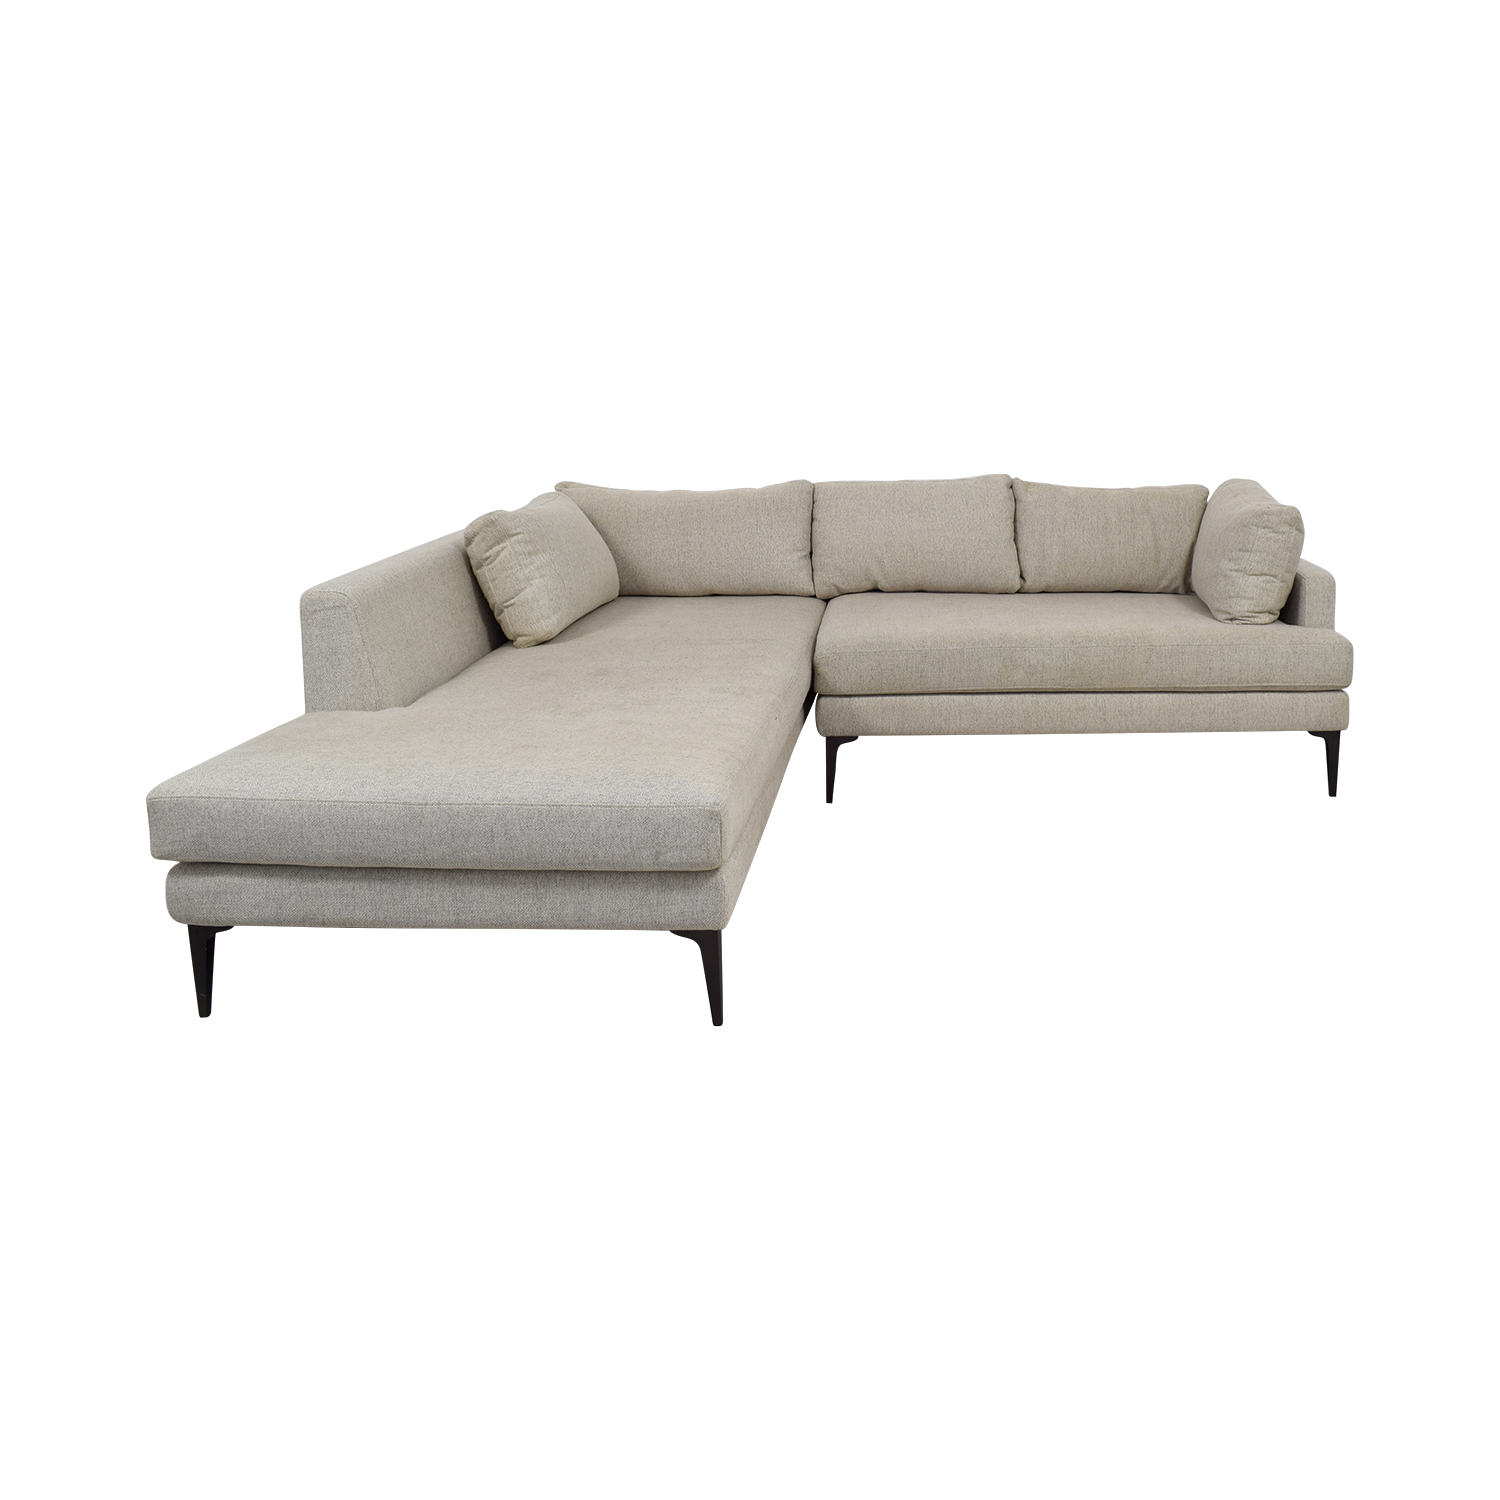 West Elm West Elm Beige Chaise Sectional on sale